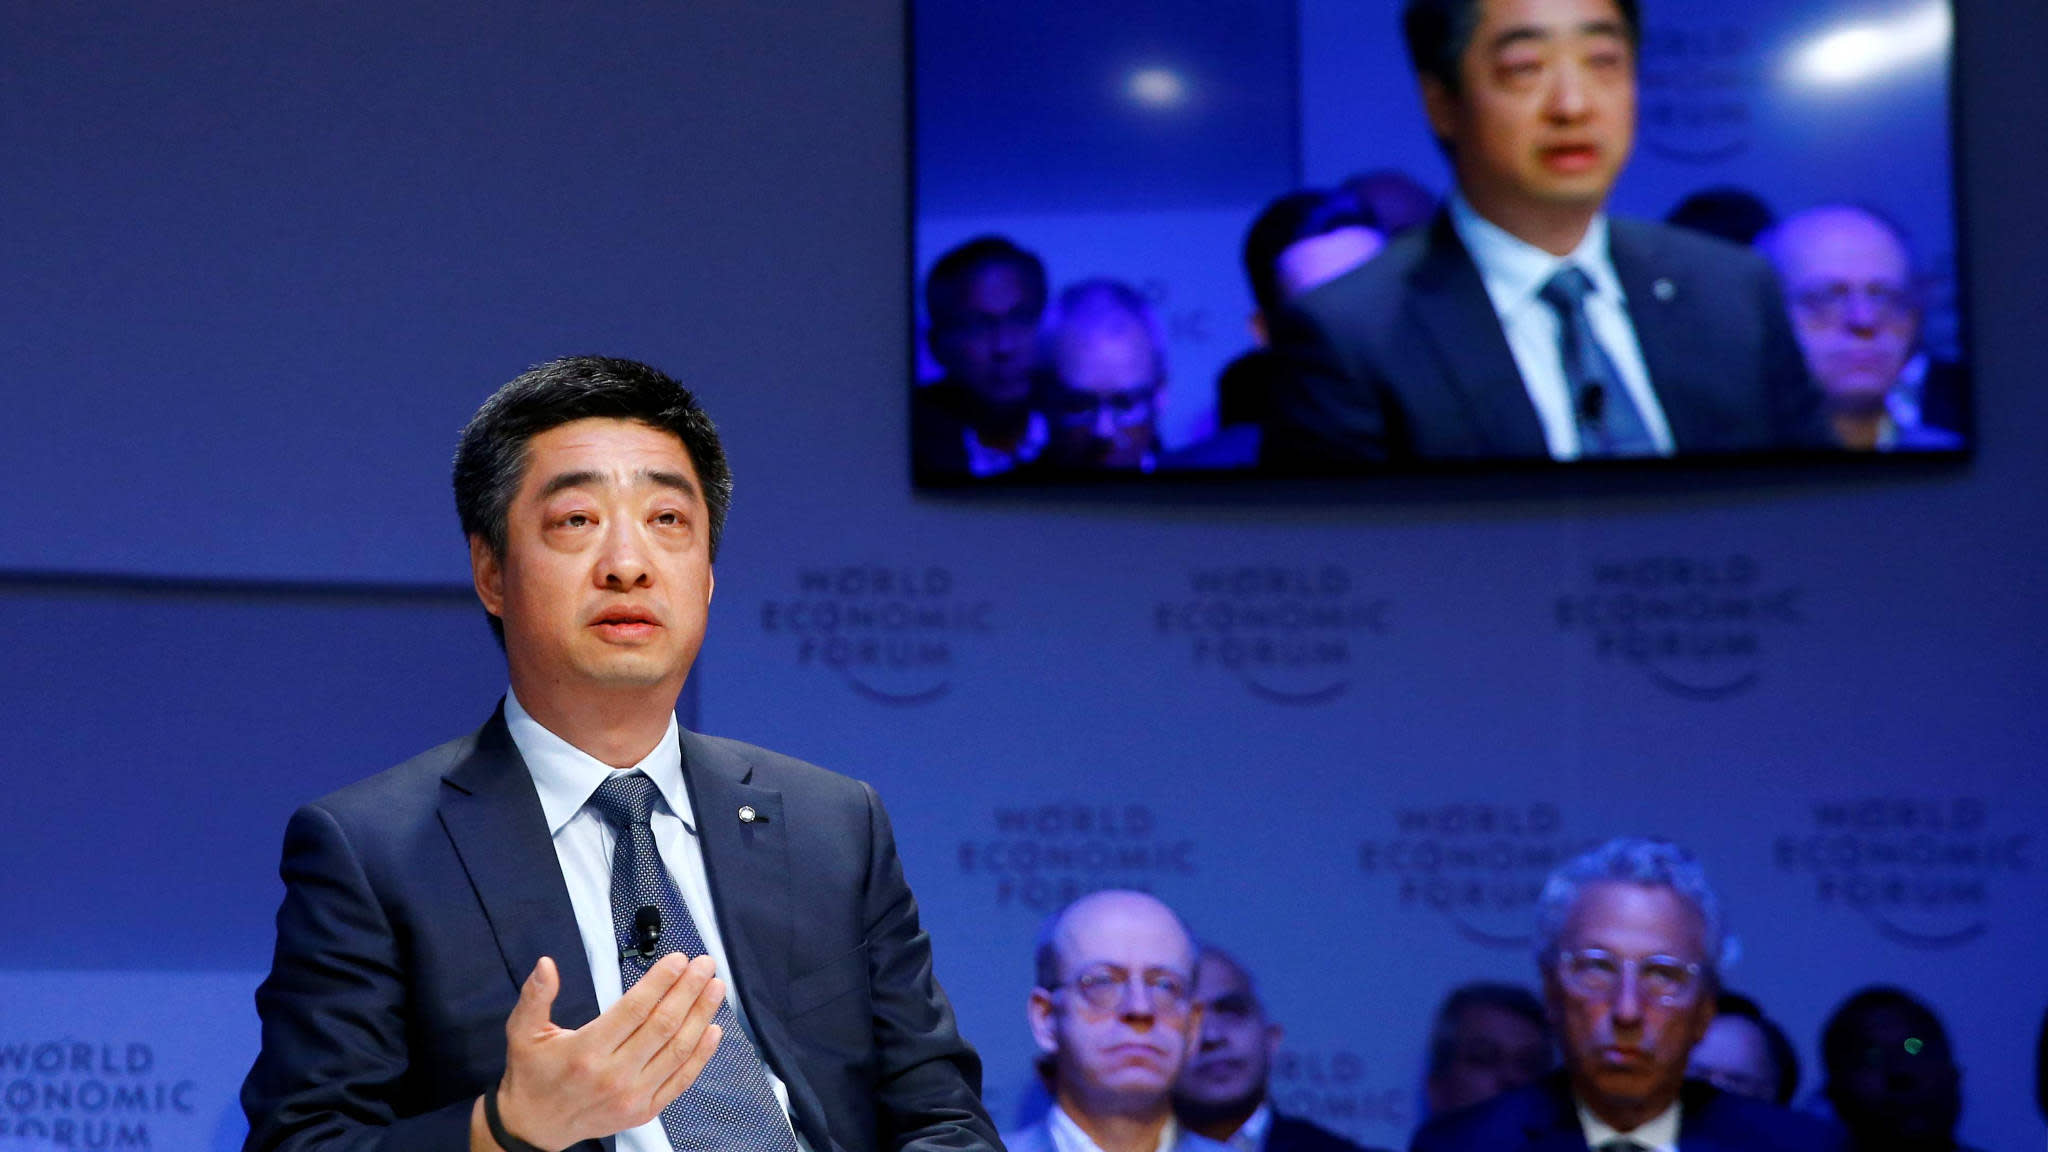 Ken Hu, deputy chairman of  Technologies, spoke at the annual meeting of the World Economic Forum in Davos, Switzerland, on Jan. 22.